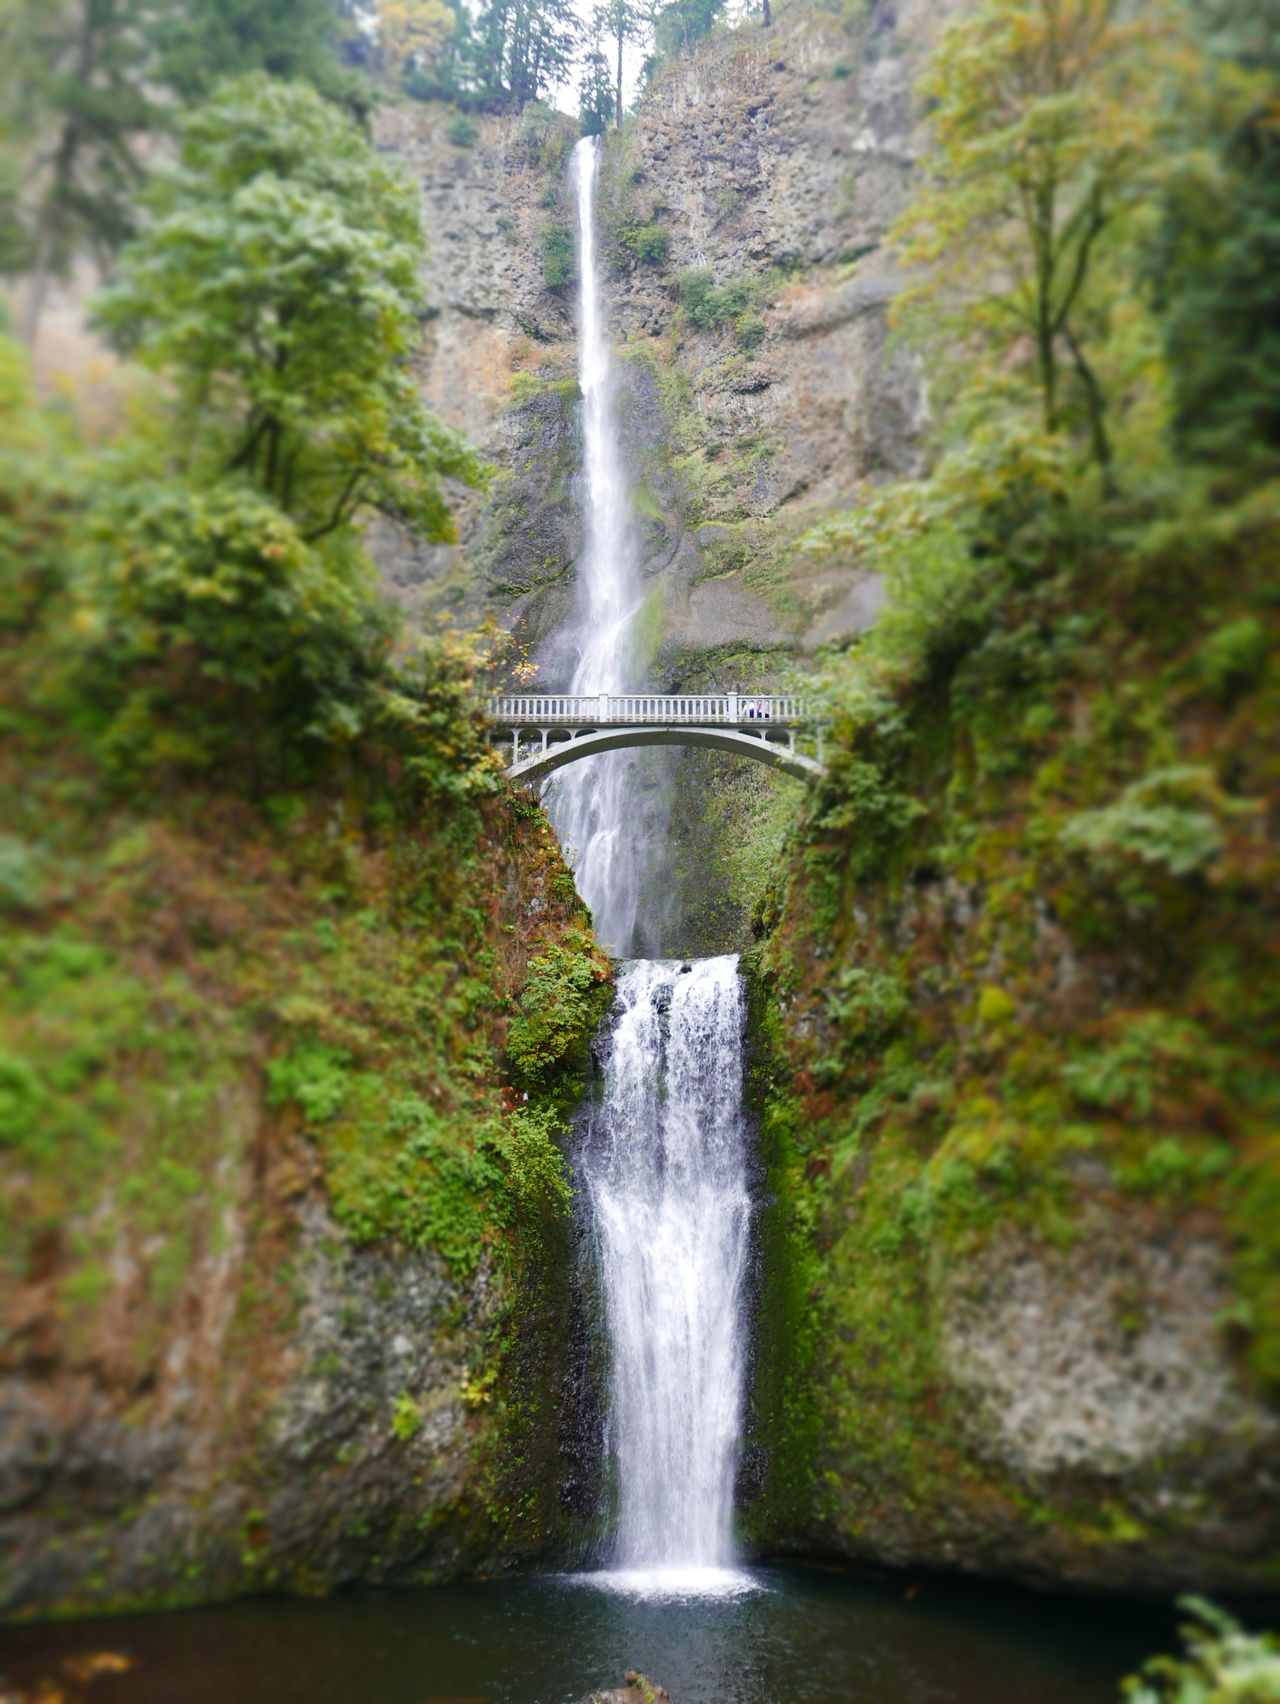 Beauty In Nature Flowing Water Multnomah Falls  Nature Outdoors Scenics Water Waterfall